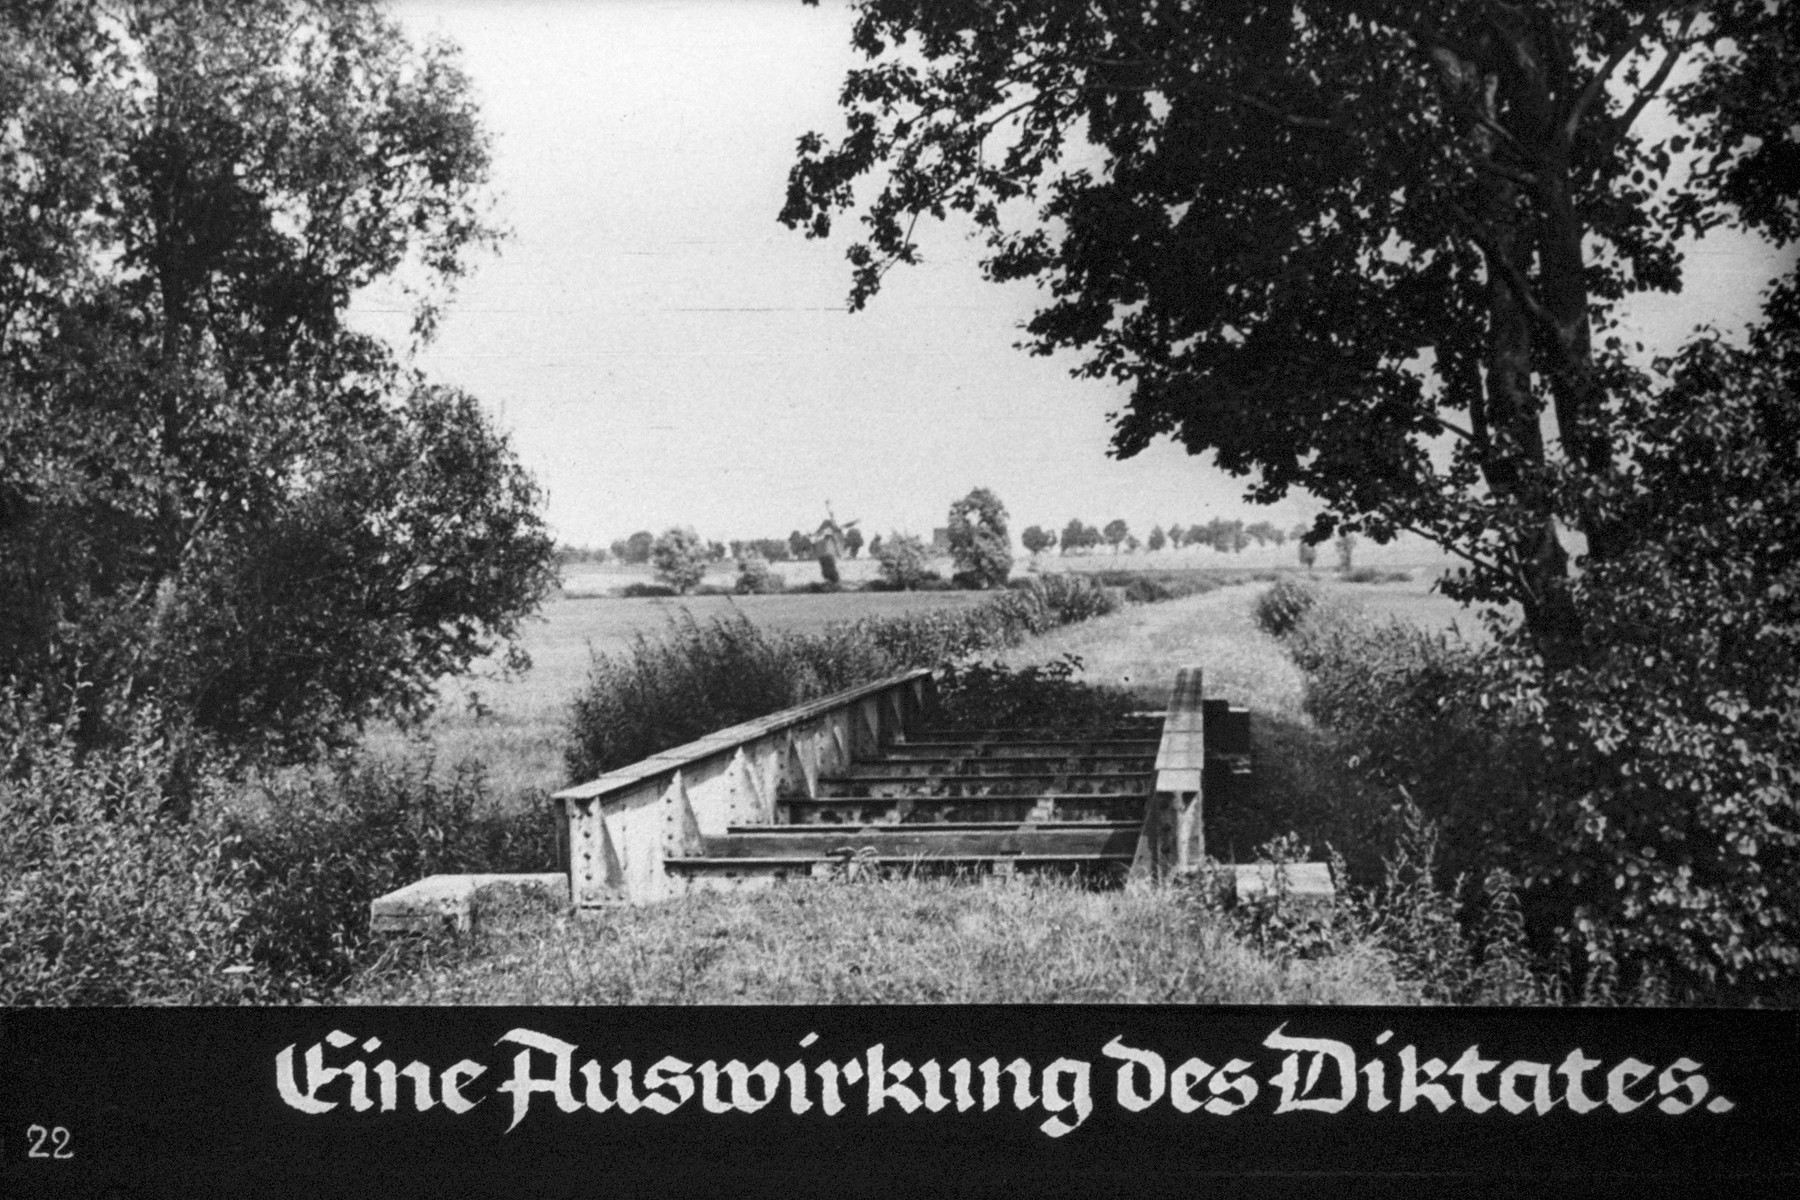 """23rd Nazi propaganda slide from Hitler Youth educational material titled """"Border Land Upper Silesia.""""  Eine Auswirkung des Diktates. // One effect of the edict."""